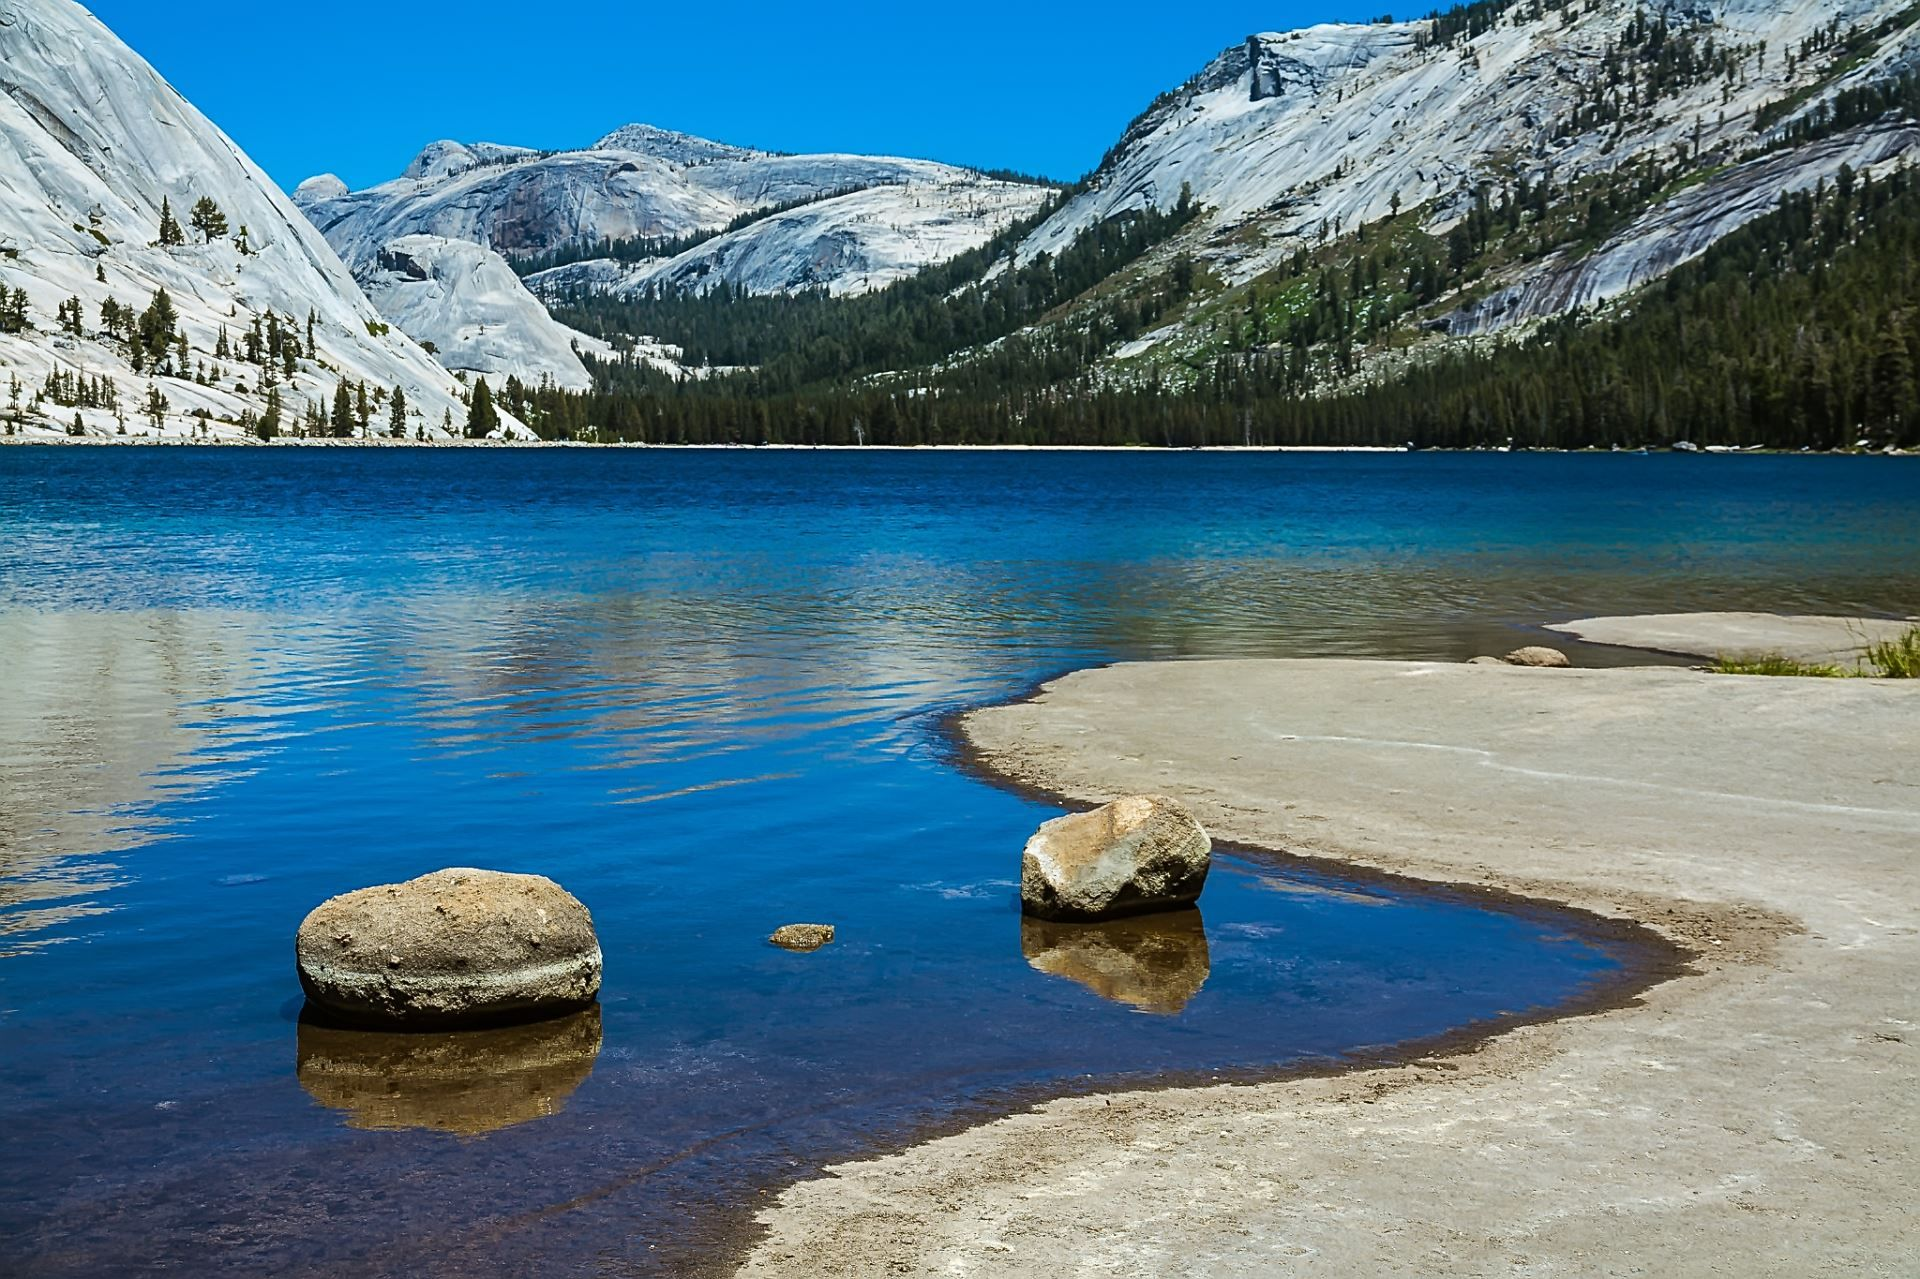 The Best Freshwater Beaches In The US North American Travel - North americas 9 most scenic lakes